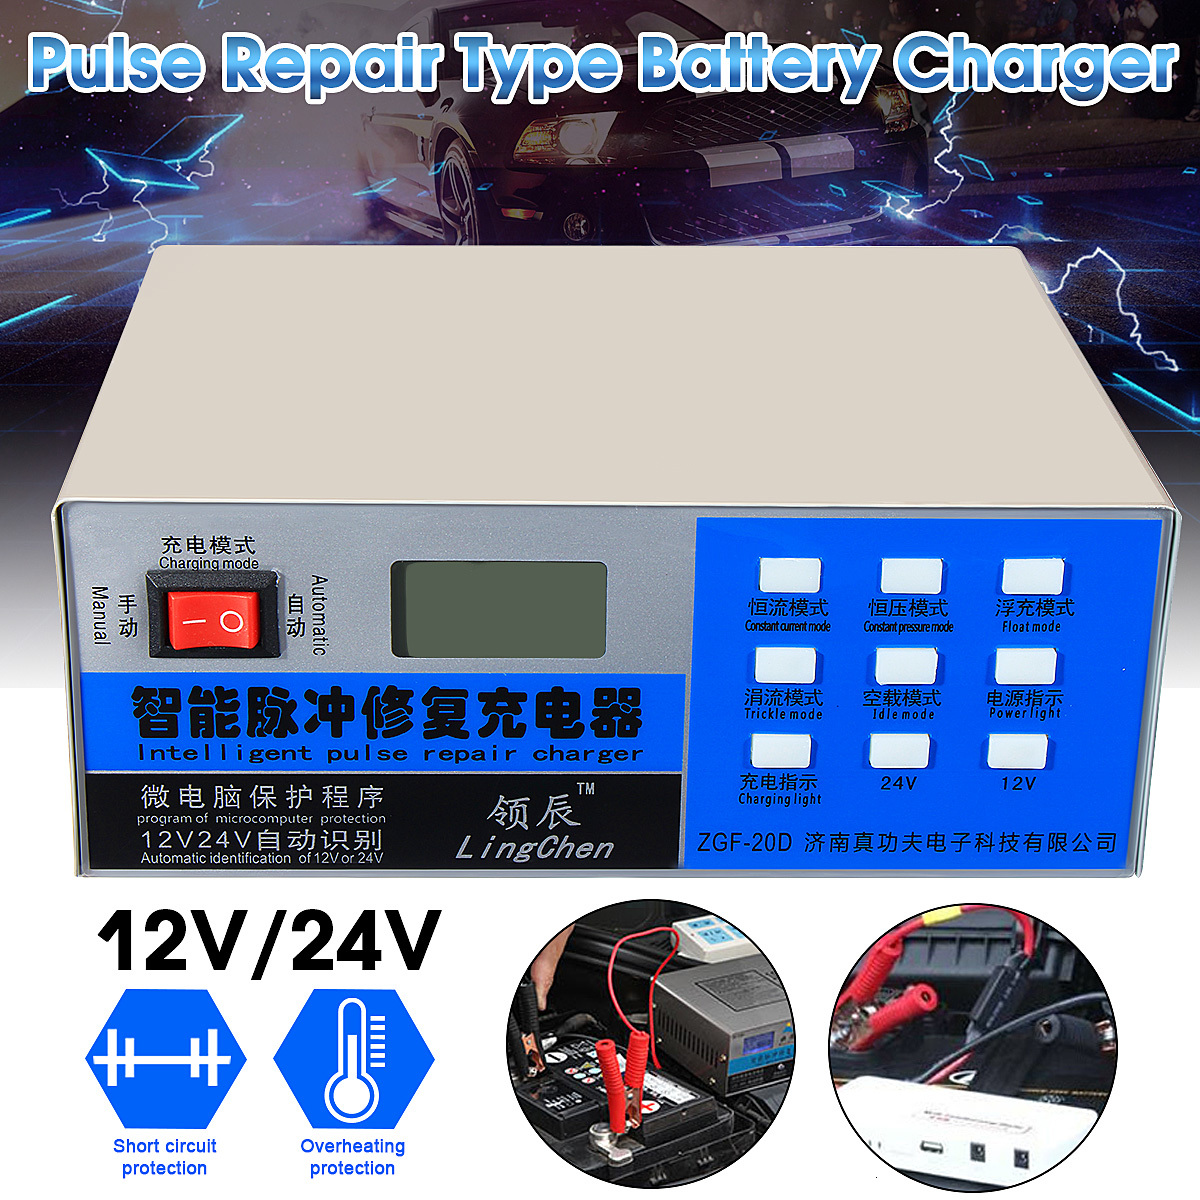 <font><b>12V</b></font>/24V <font><b>200AH</b></font> Electric Car Dry Wet <font><b>Battery</b></font> <font><b>Charger</b></font> Automatic Intelligent Pulse Repair Type Car Jump LCD Display 190x150x70mm image